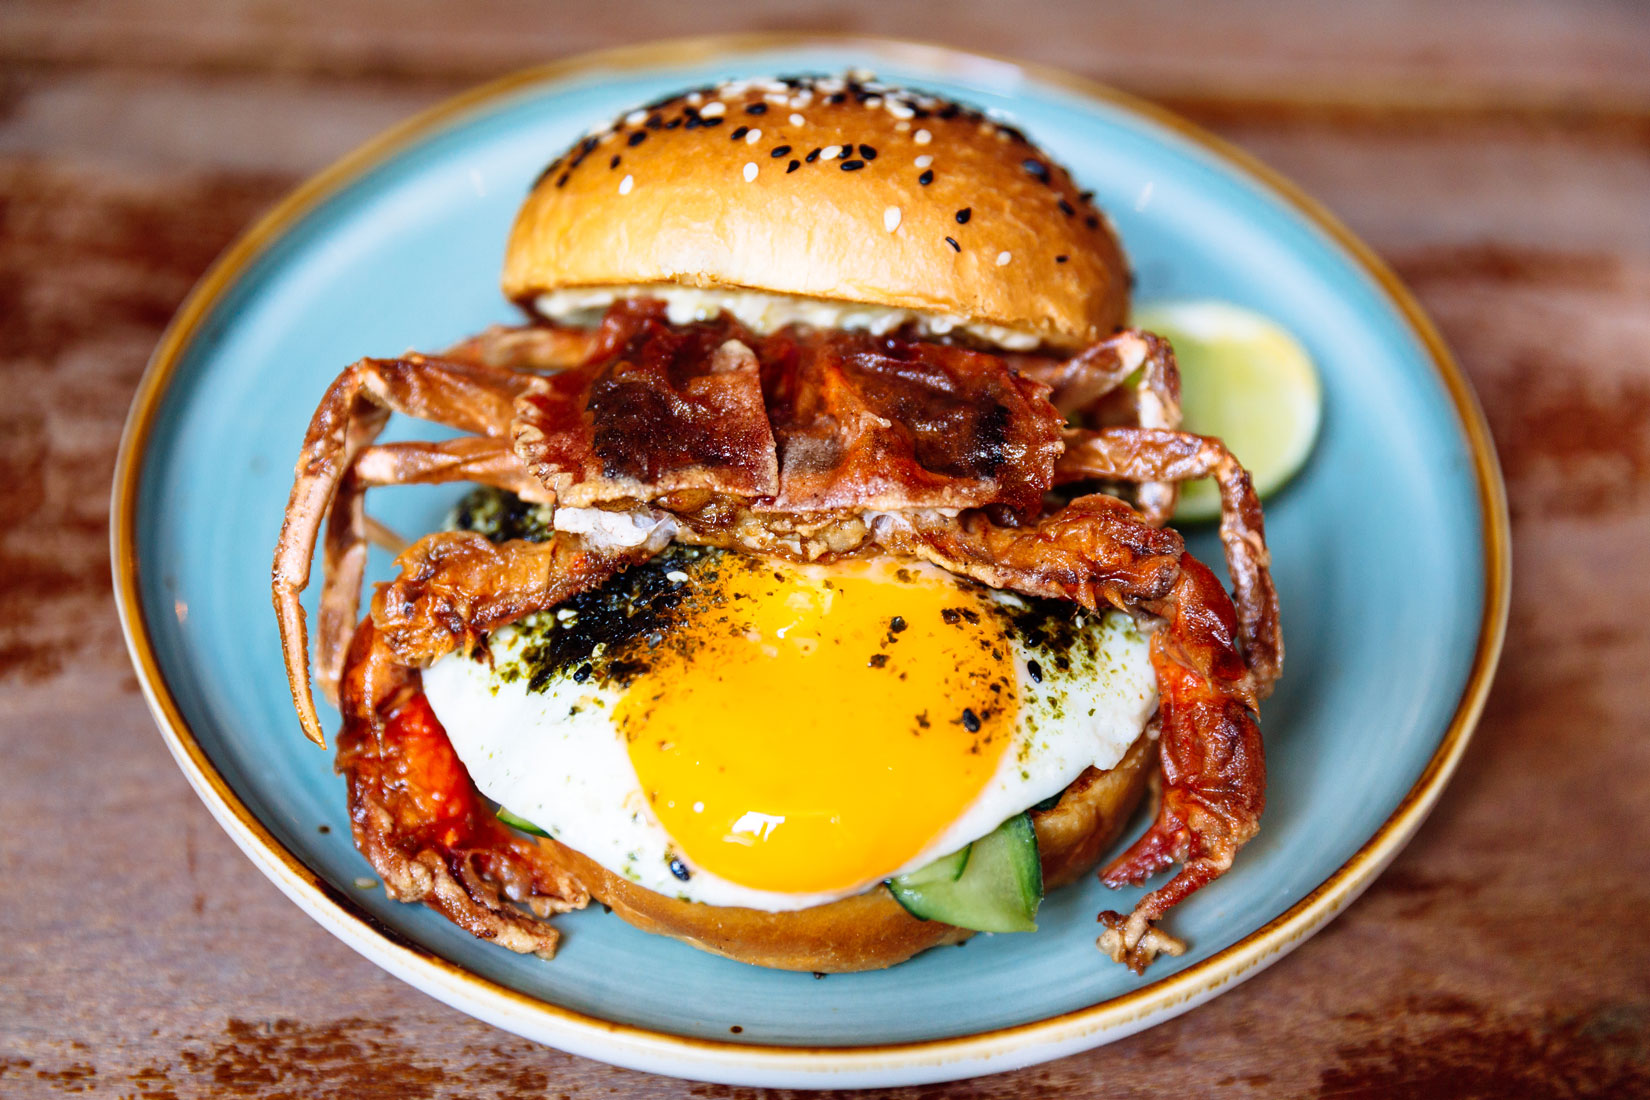 A delicious crab burger with a freshly fried egg.